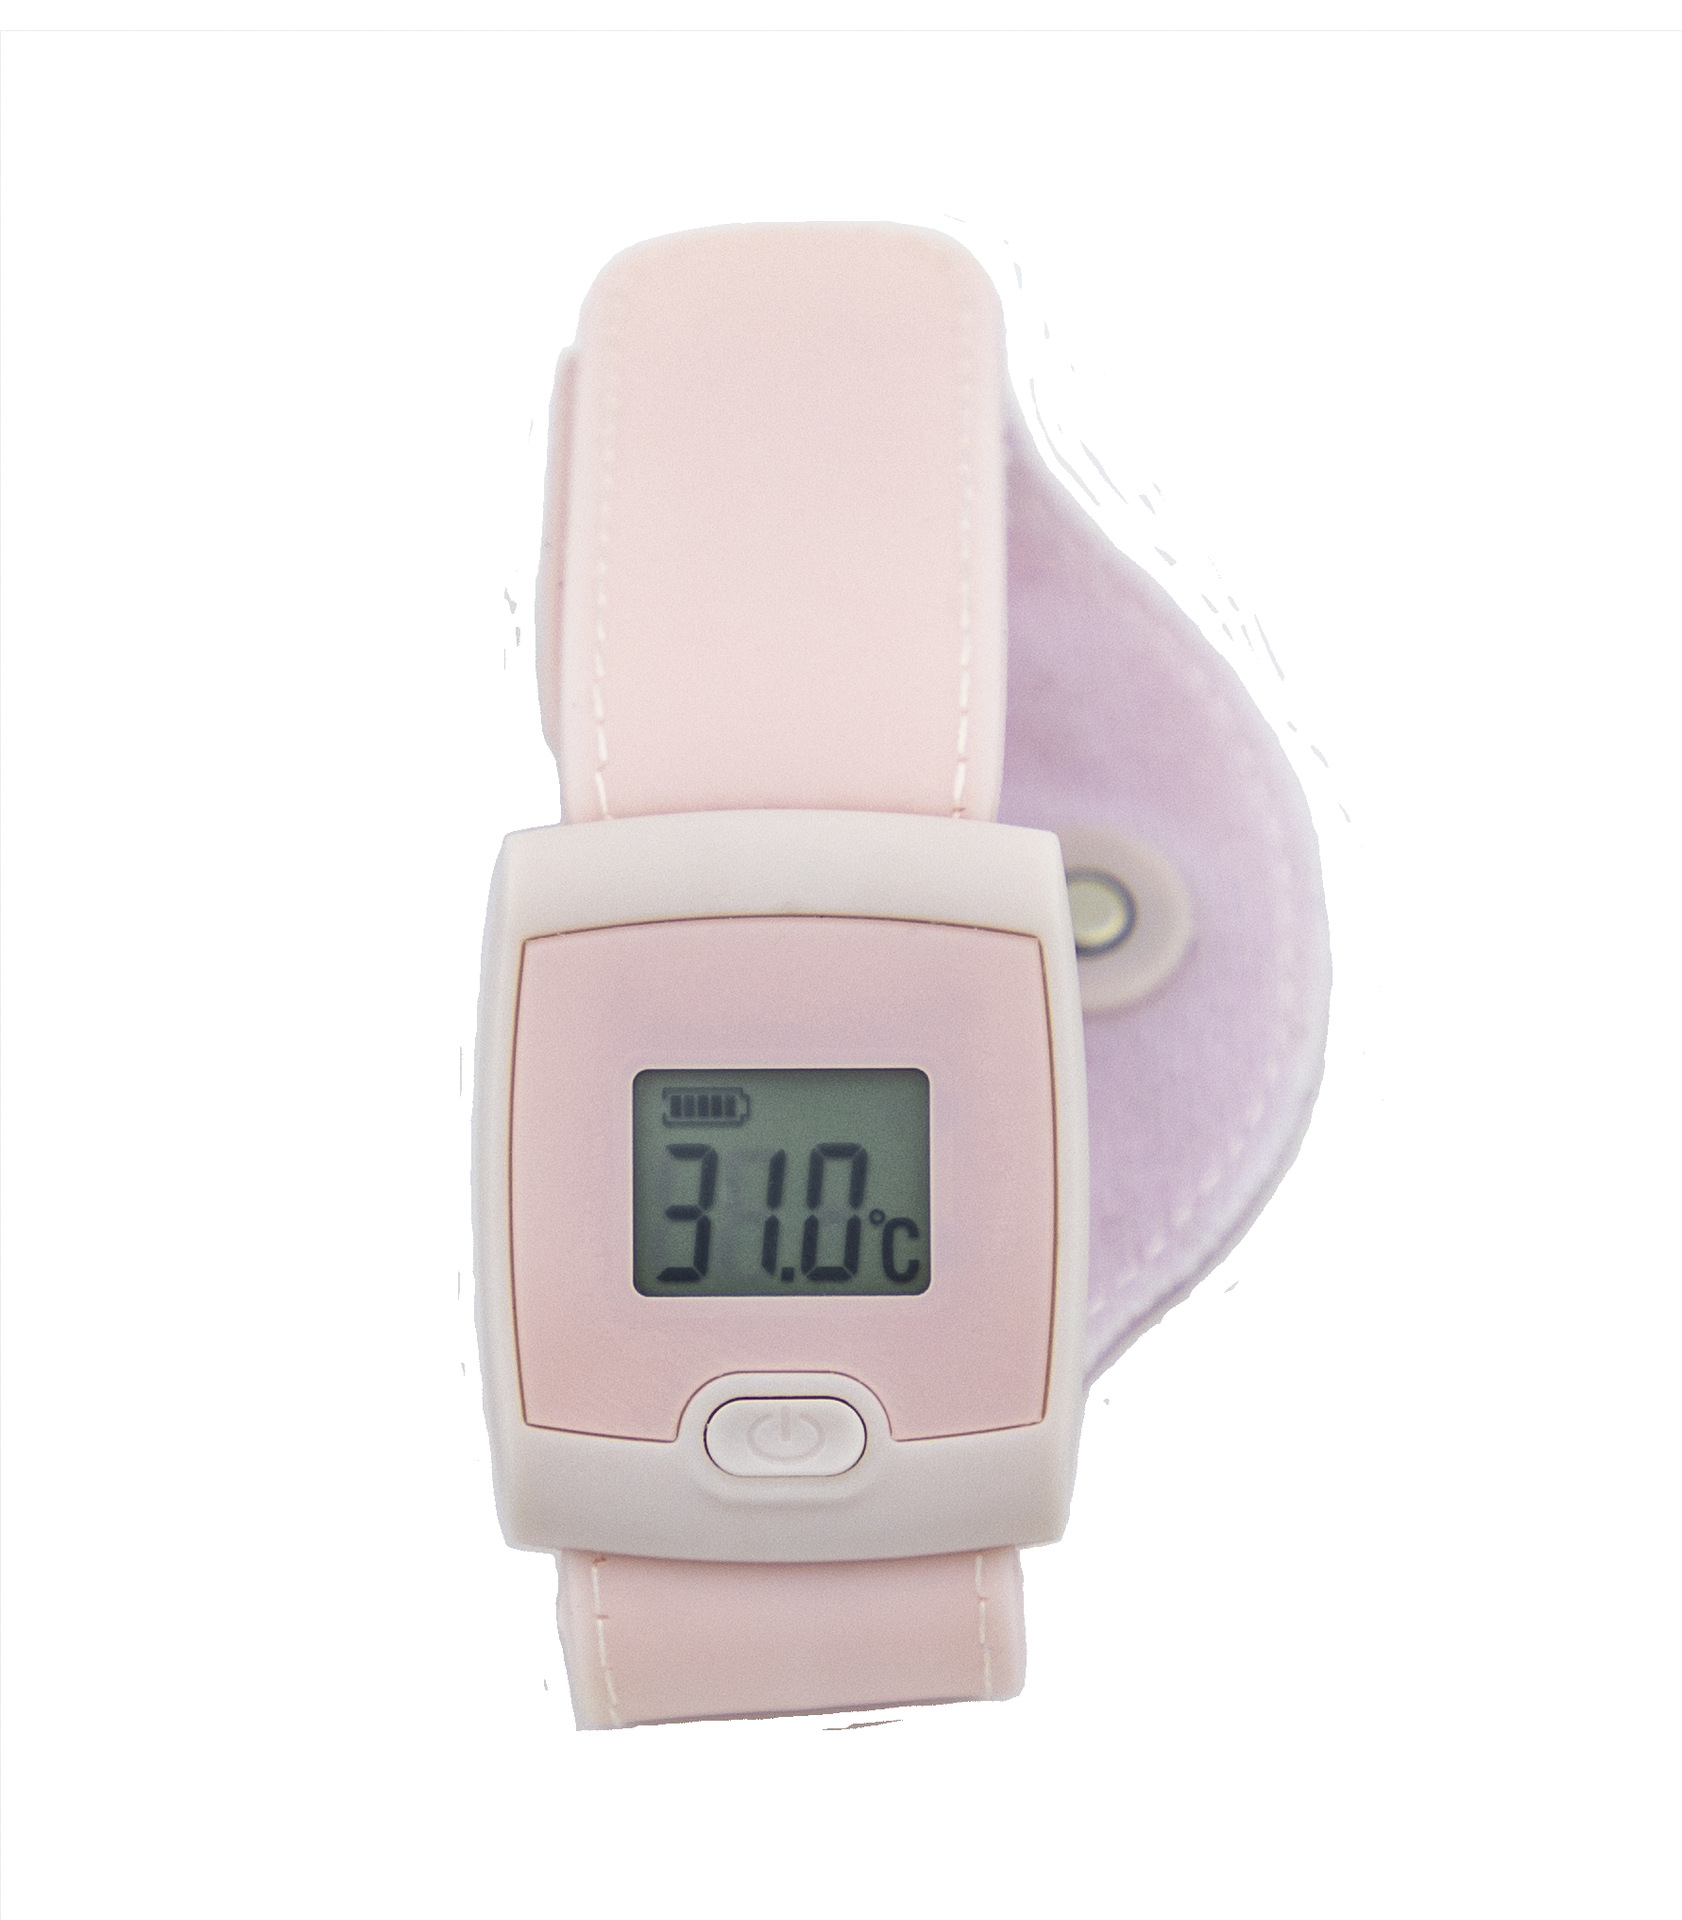 Bluetooth 4.0 Thermodetector Smart Thermomete Watch Type Portable Home Use Pink